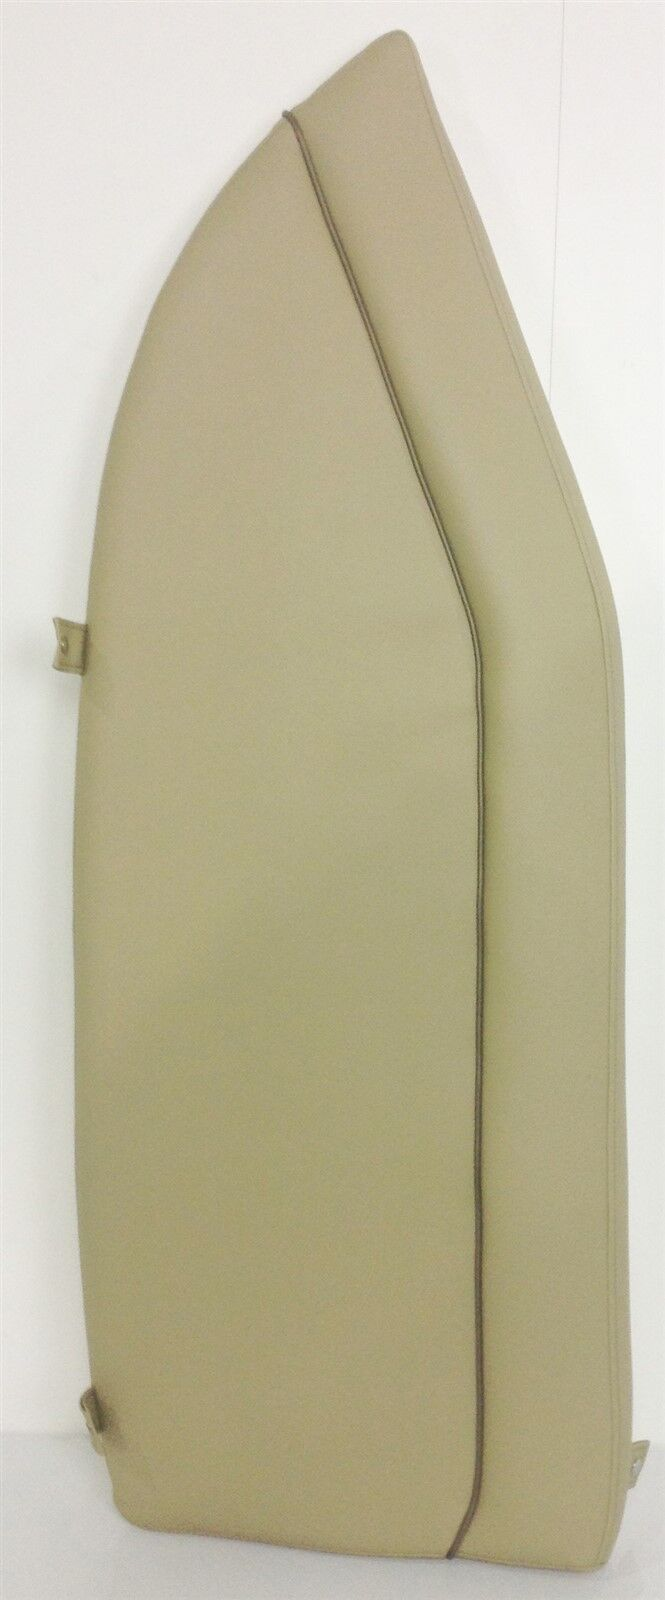 NEW Sportsman Boats Bow Cushion Port Tan W/ Brown Accent Strip And Snaps Marine